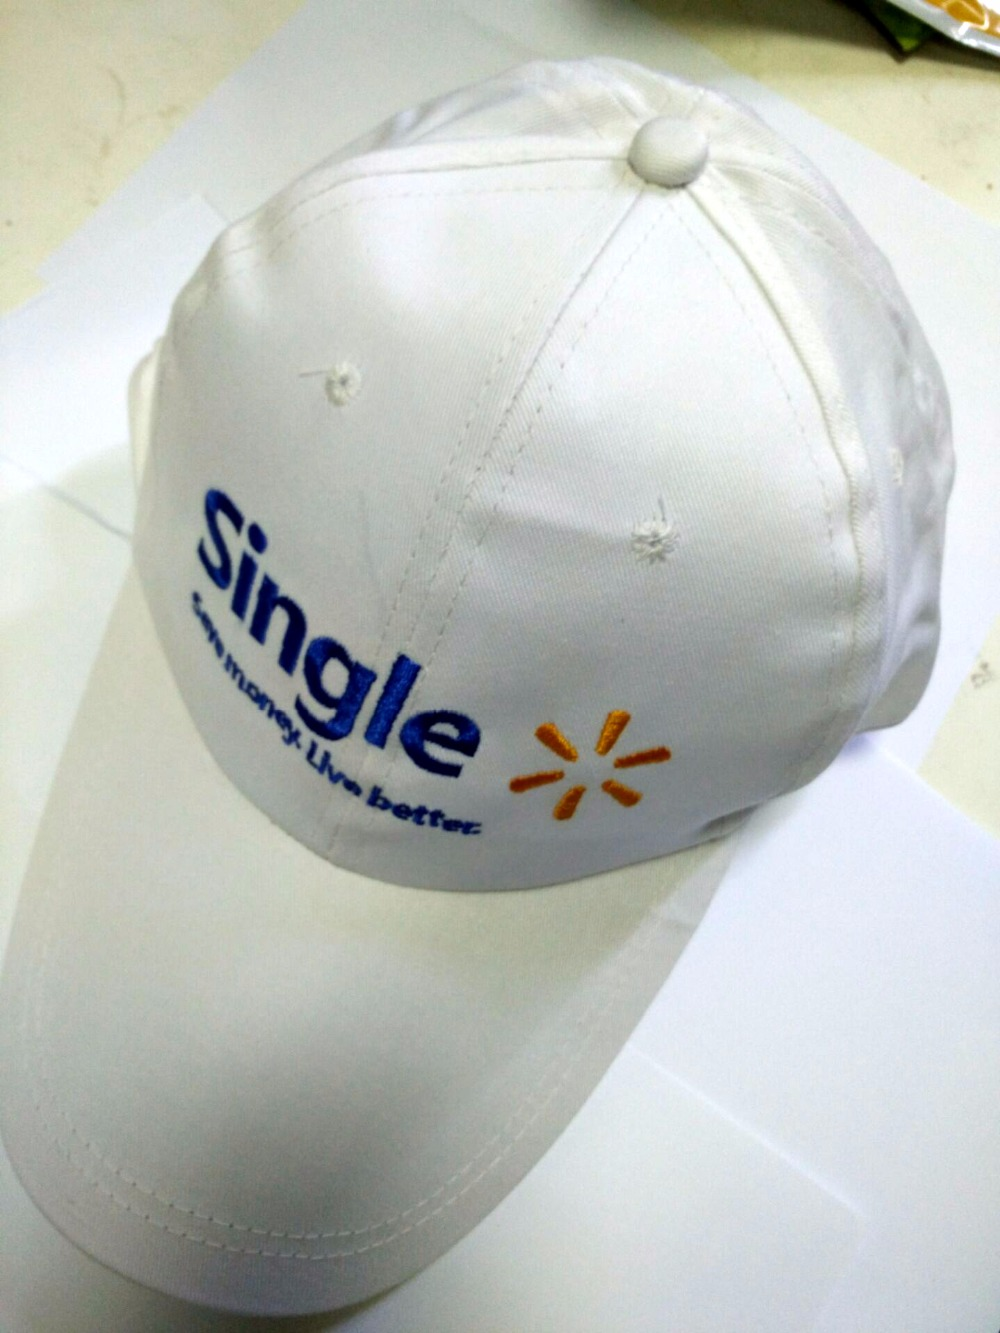 Being single save money live better white cotton baseball cap adjustable visor Caps(China (Mainland))